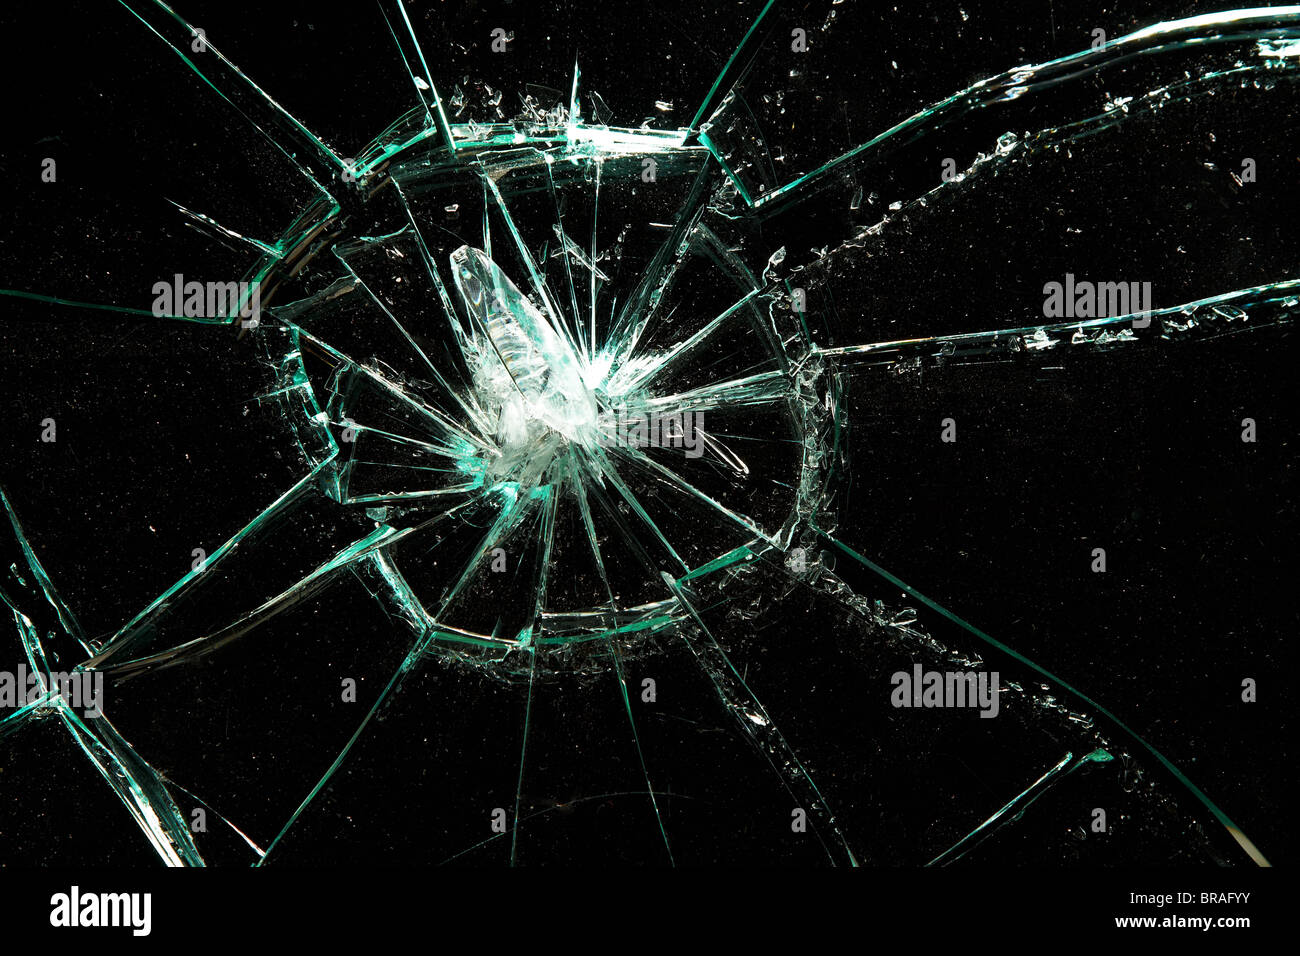 broken glass on a black background - Stock Image